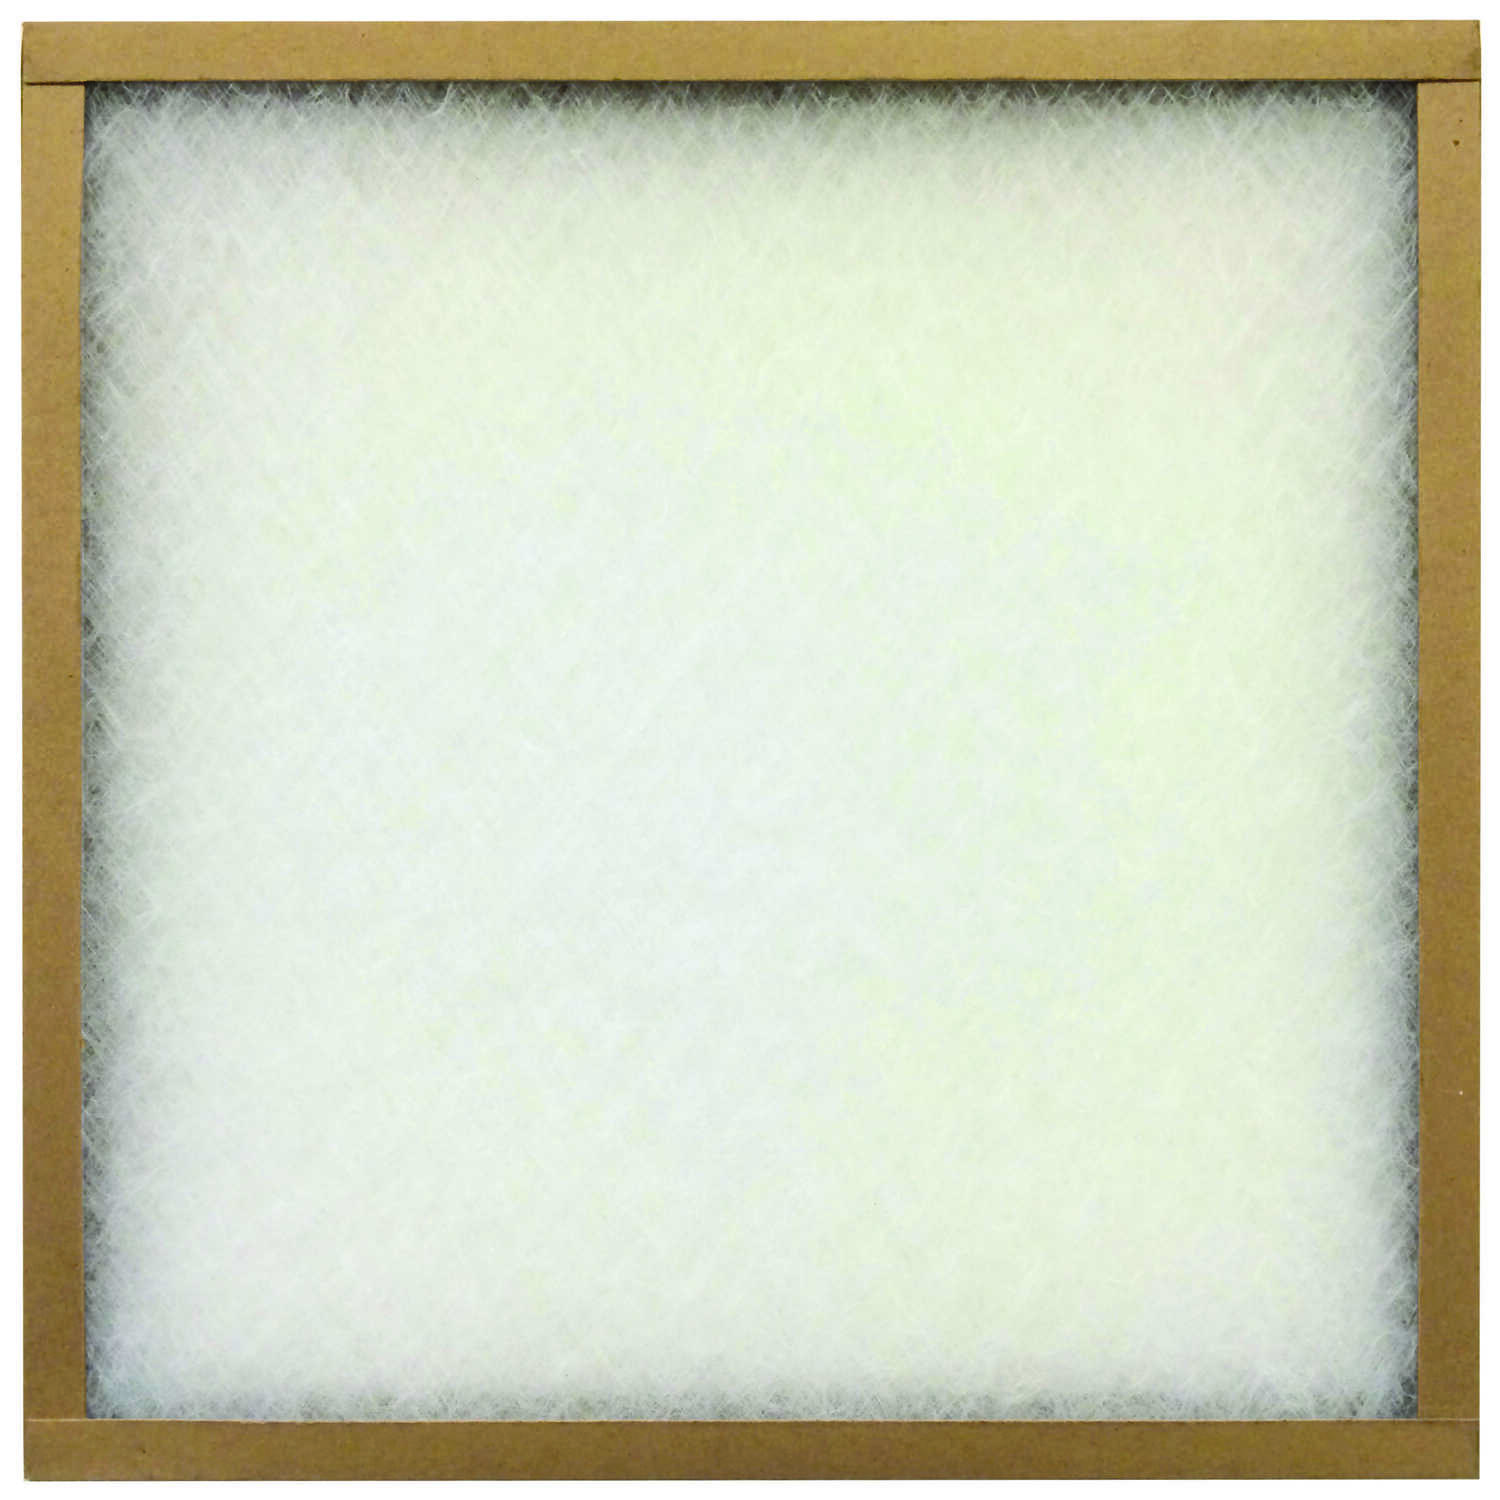 AAF Flanders  18 in. W x 20 in. H x 1 in. D Fiberglass  Air Filter